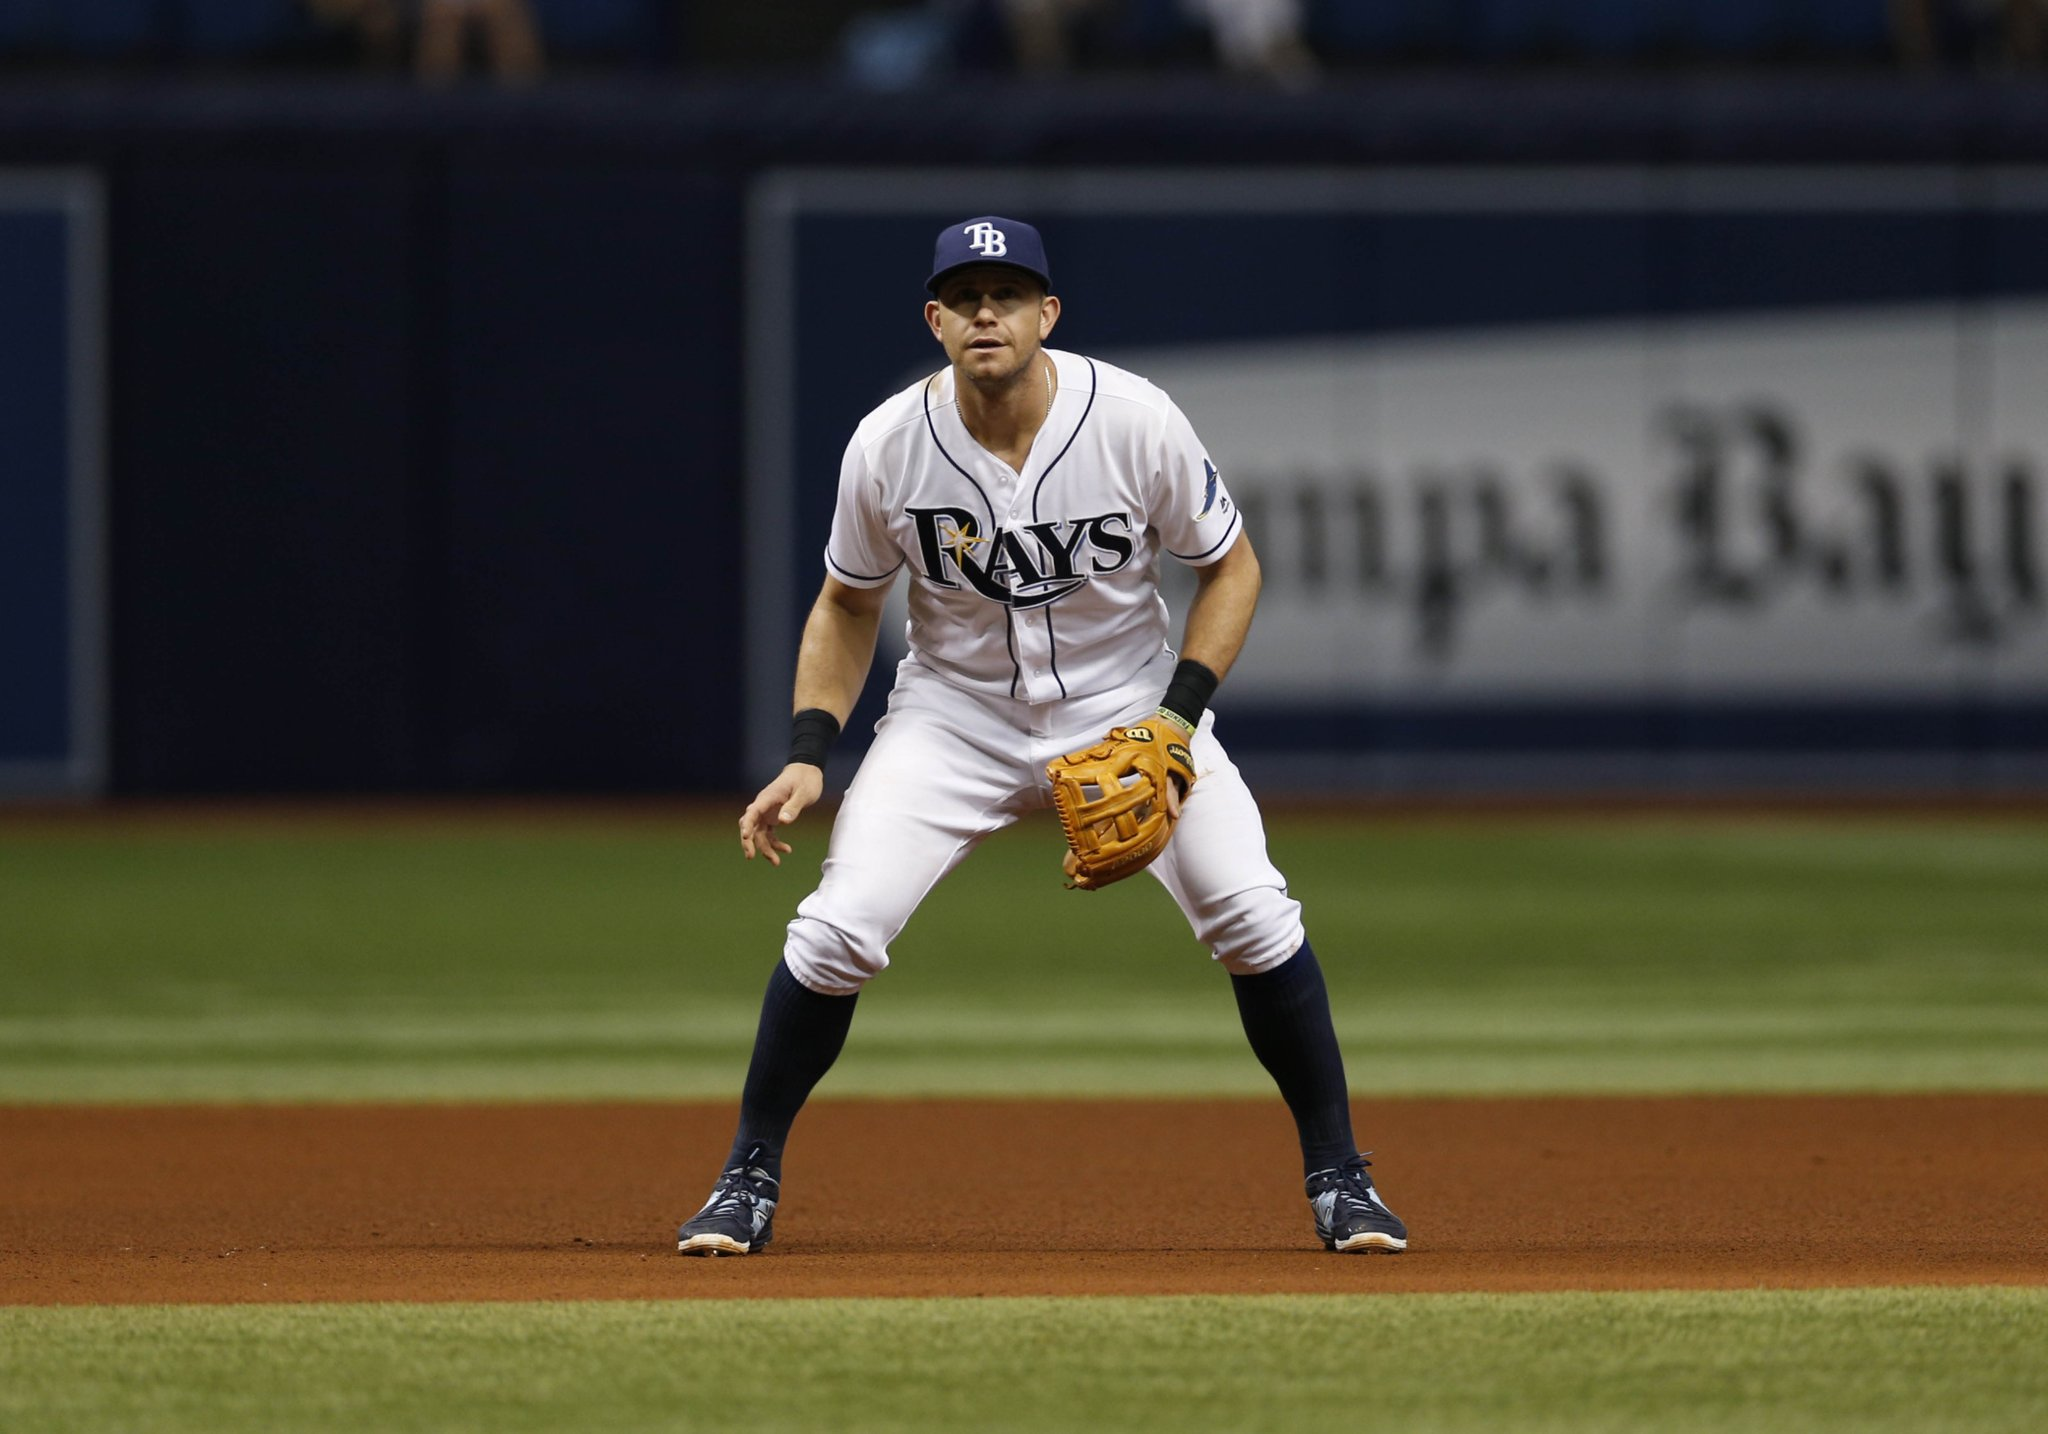 On Wednesday, Evan Longoria became the Rays leader with 1,236 games played, surpassing Carl Crawford. (Photo Credit: Tampa Bay Rays)